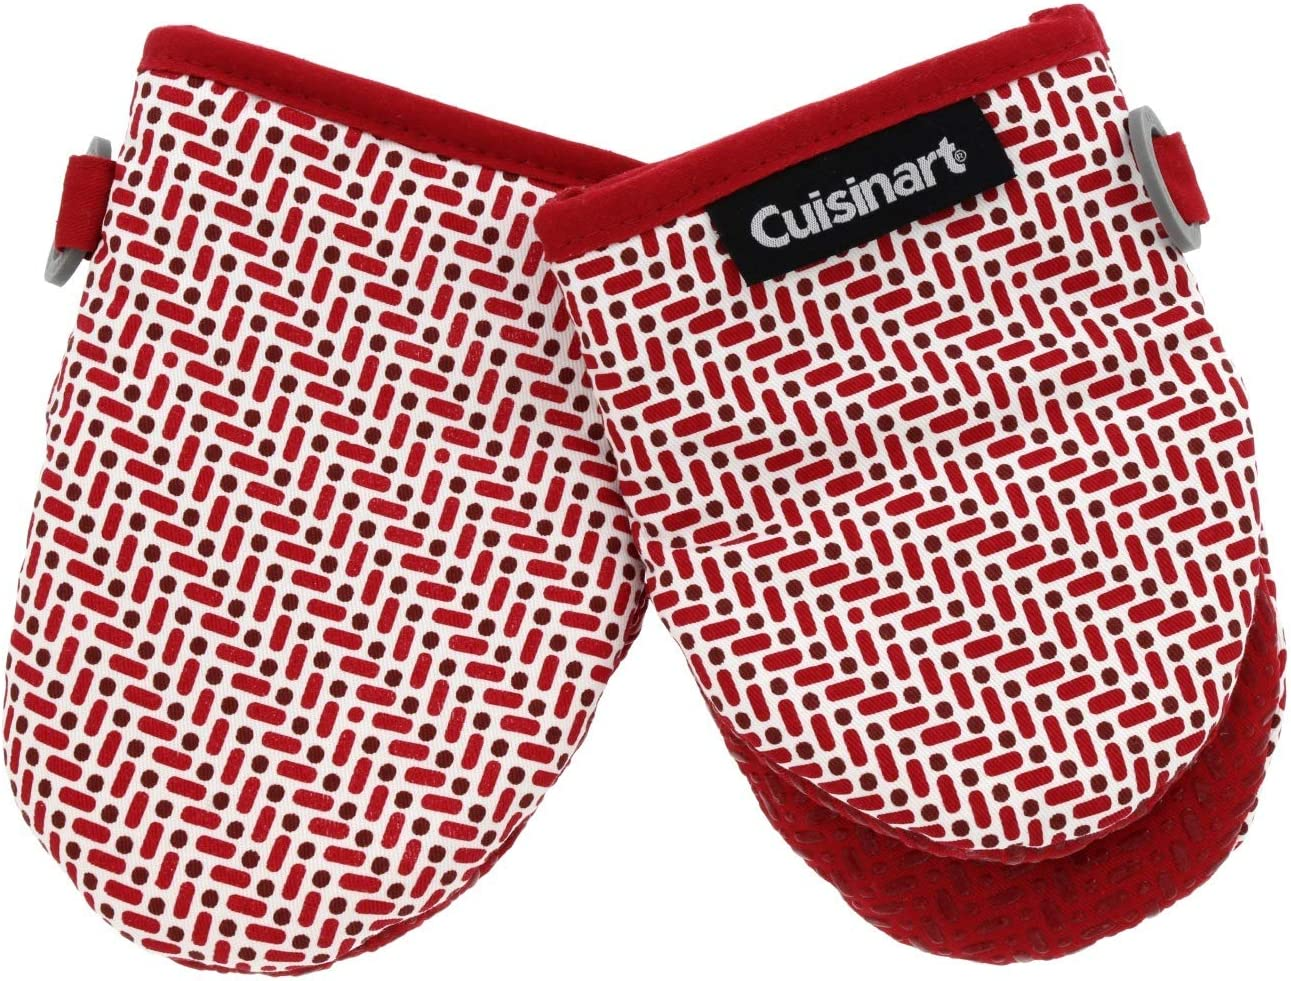 """Cuisinart Silicone Mini Oven Mitts, 2 Pack - Little Oven Gloves for Cooking-Heat Resistant, Non-Slip Grip, Hanging Loop, 5.5"""" x 7.5"""" -Ideal for Handling Hot Kitchen/Bakeware Items - Brick Print - Red"""